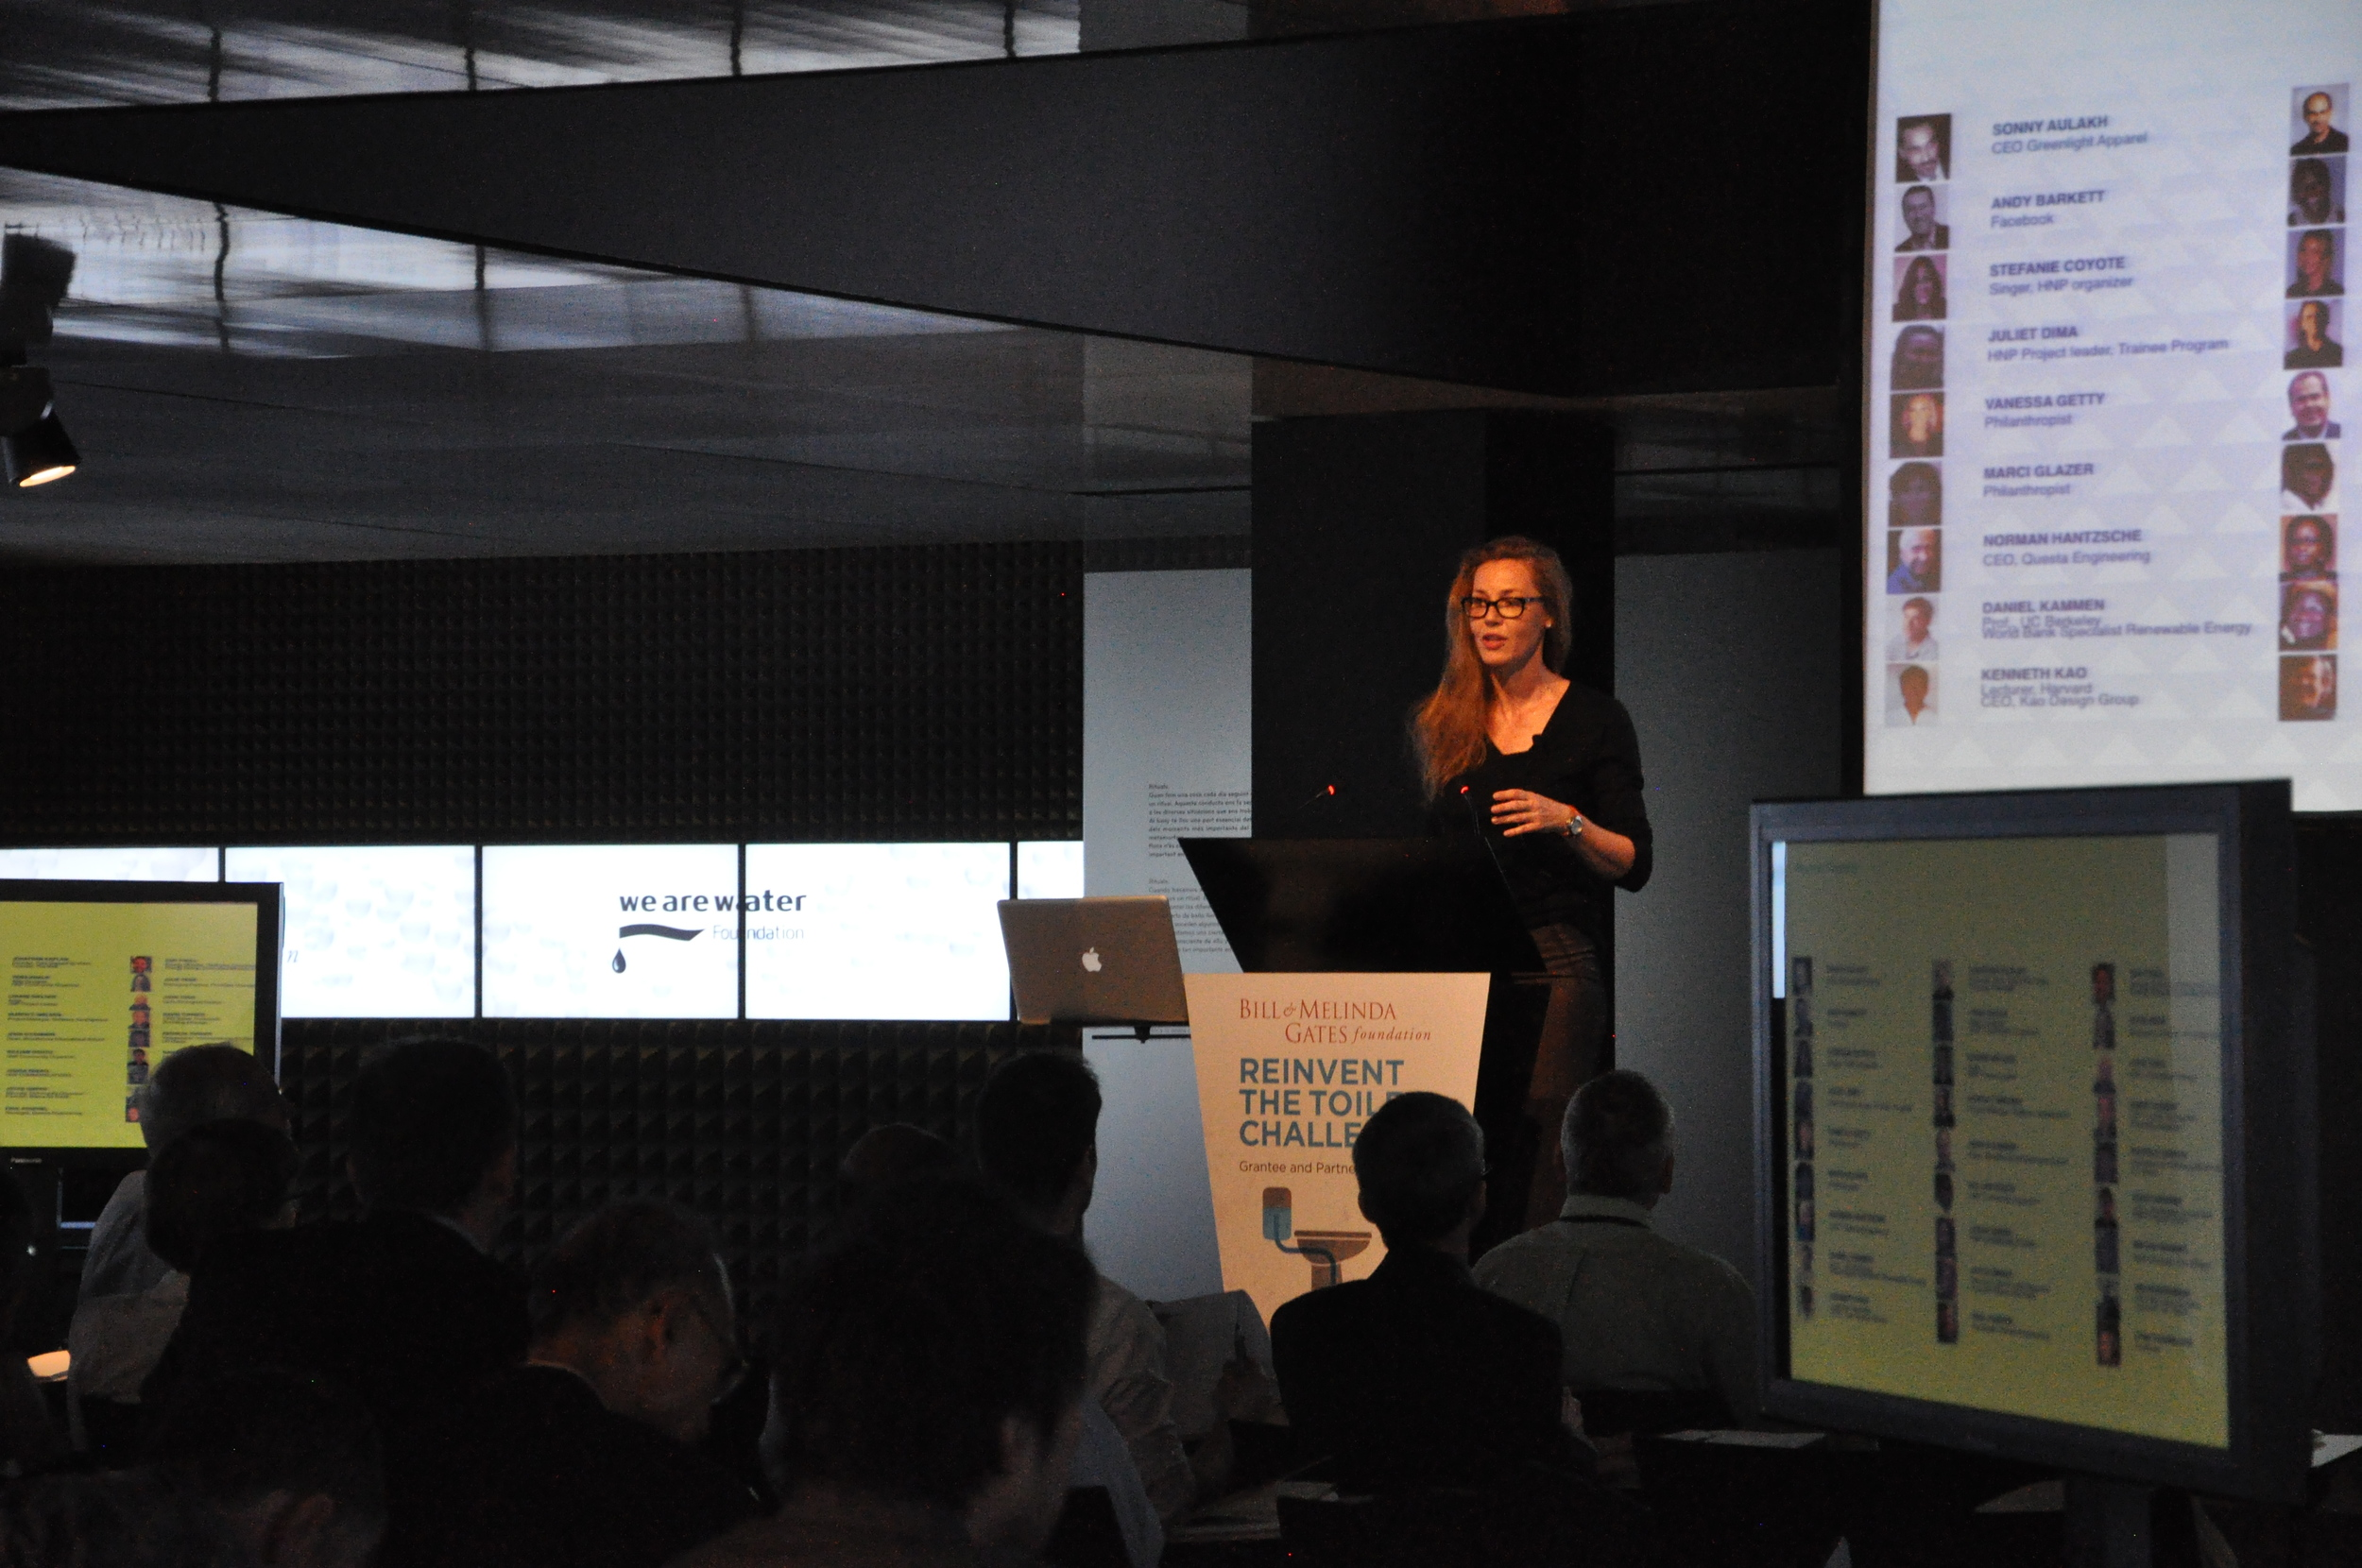 Keynote speech at the Bill and Melinda Gates Reinvent the Toilet challenge, Barcelona, 2013